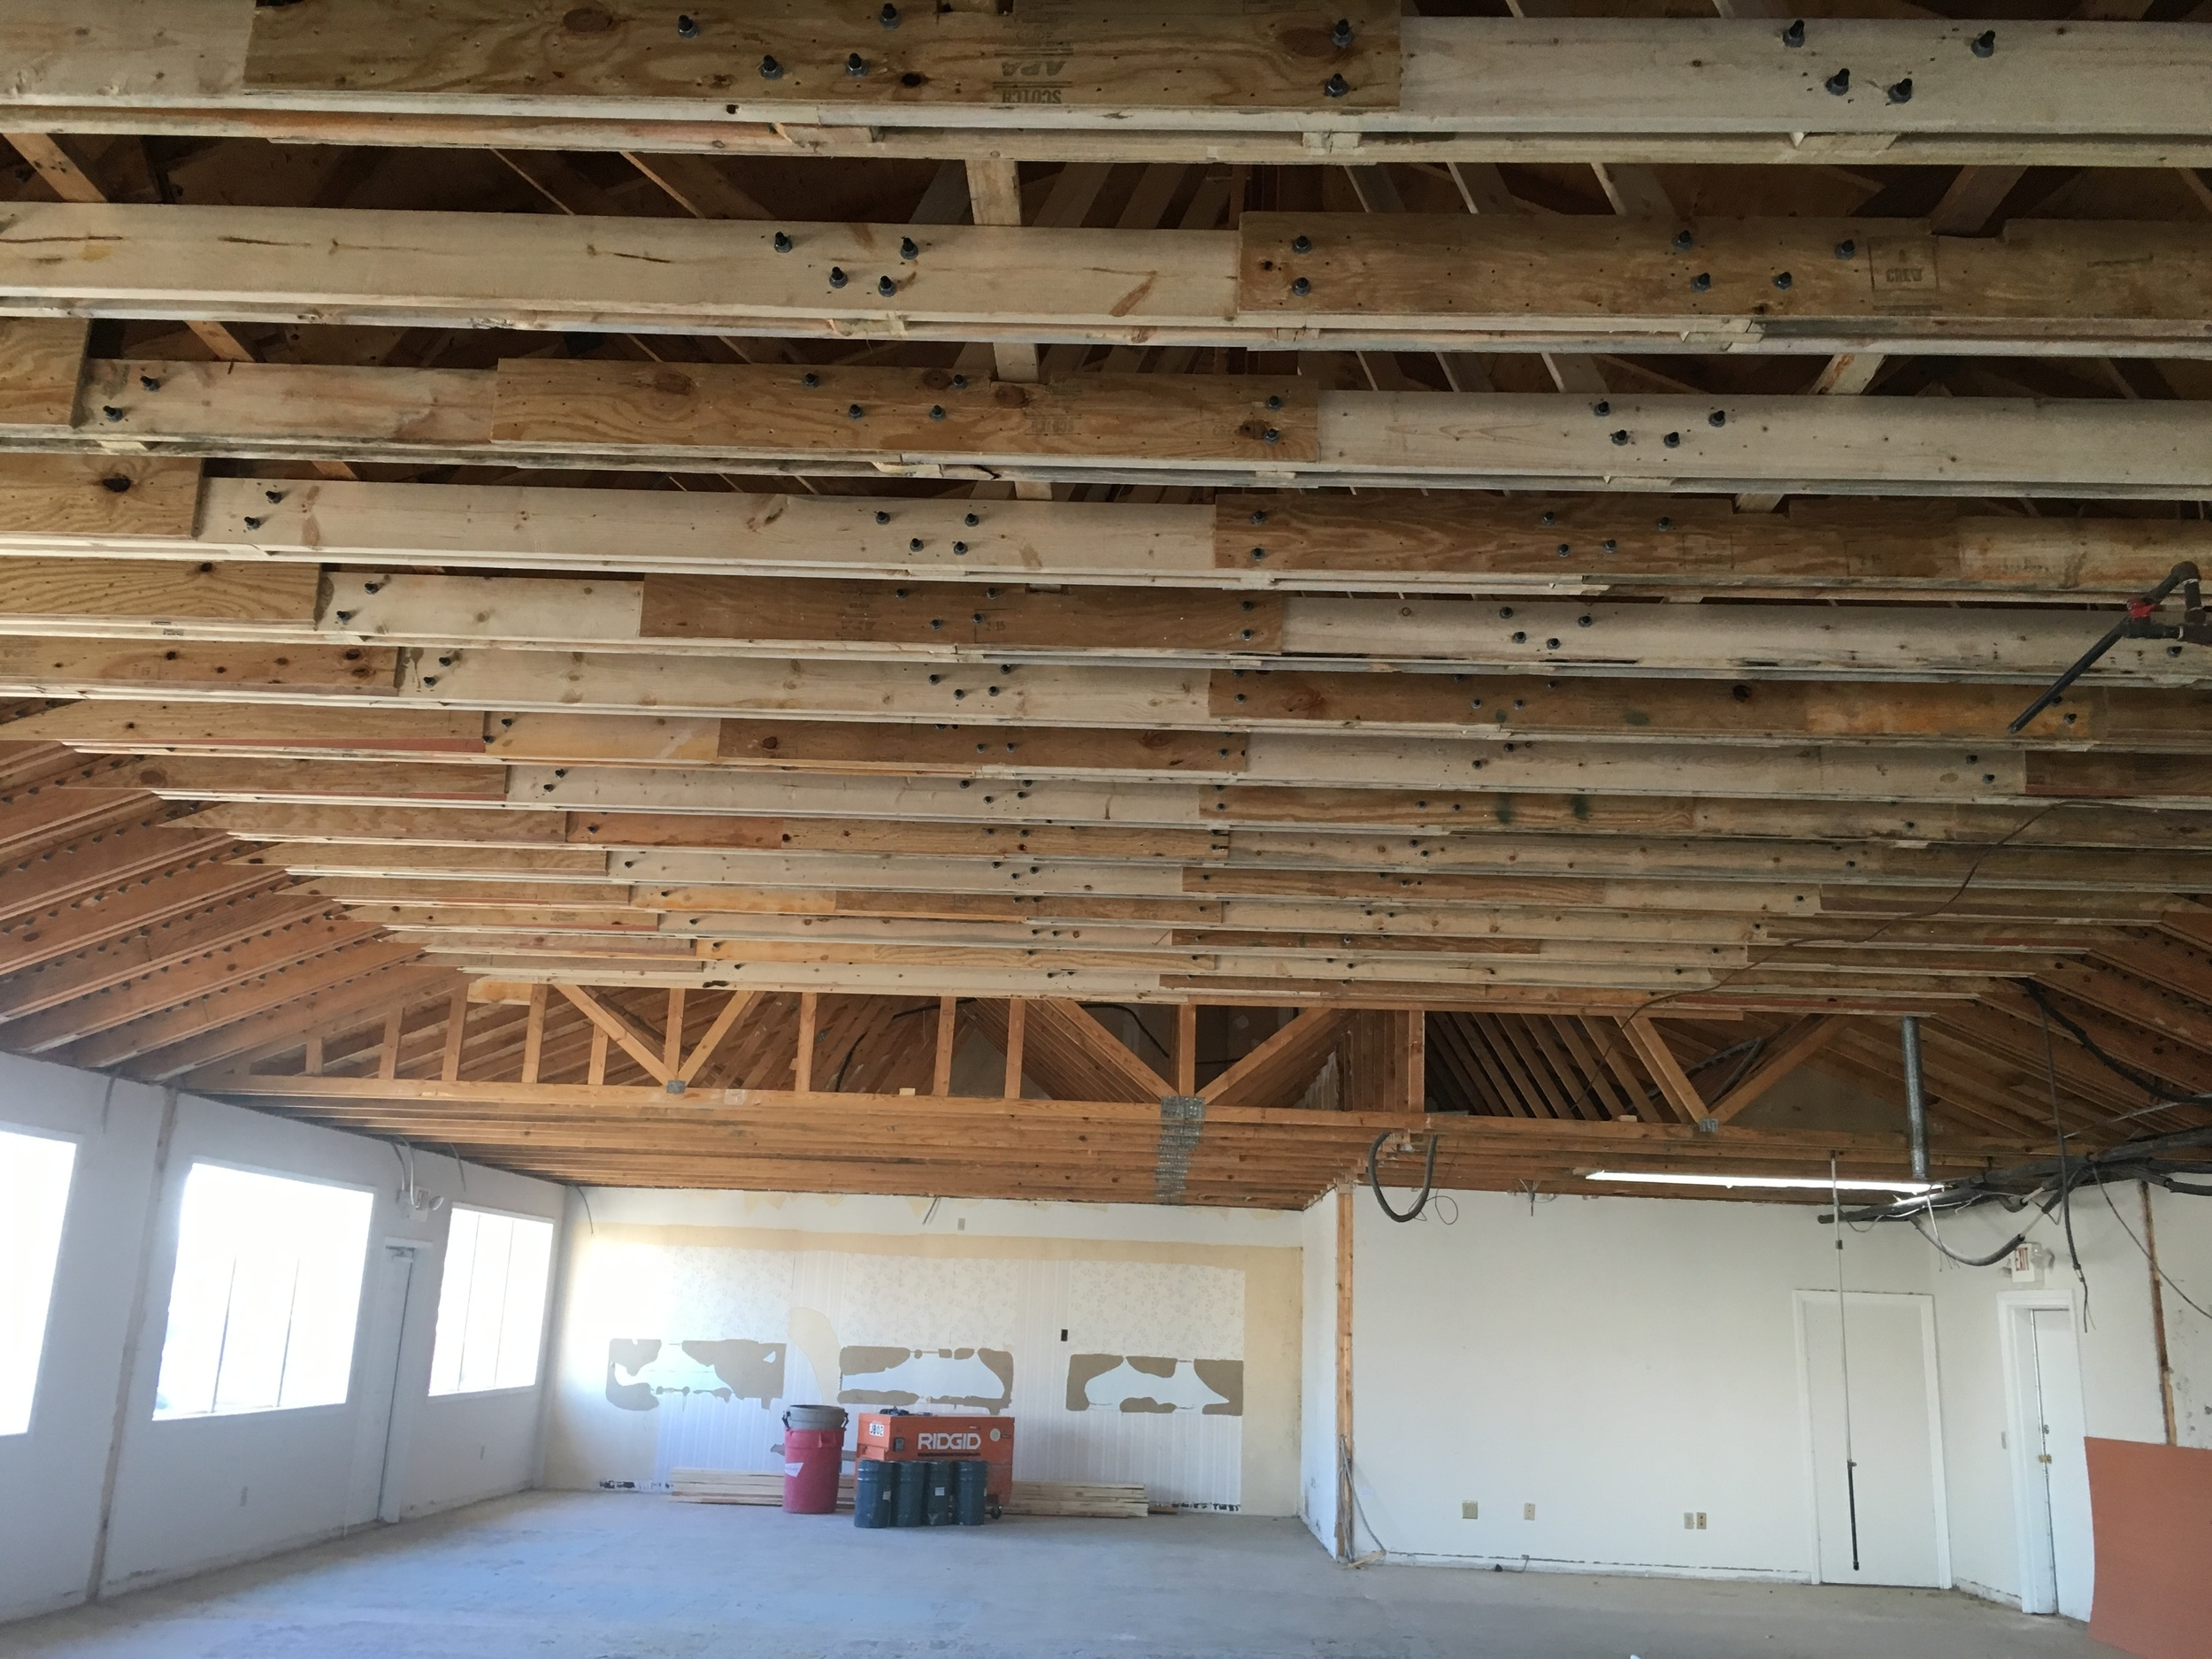 Firehouse Sub Truss Work 2 Feb 2016.JPG